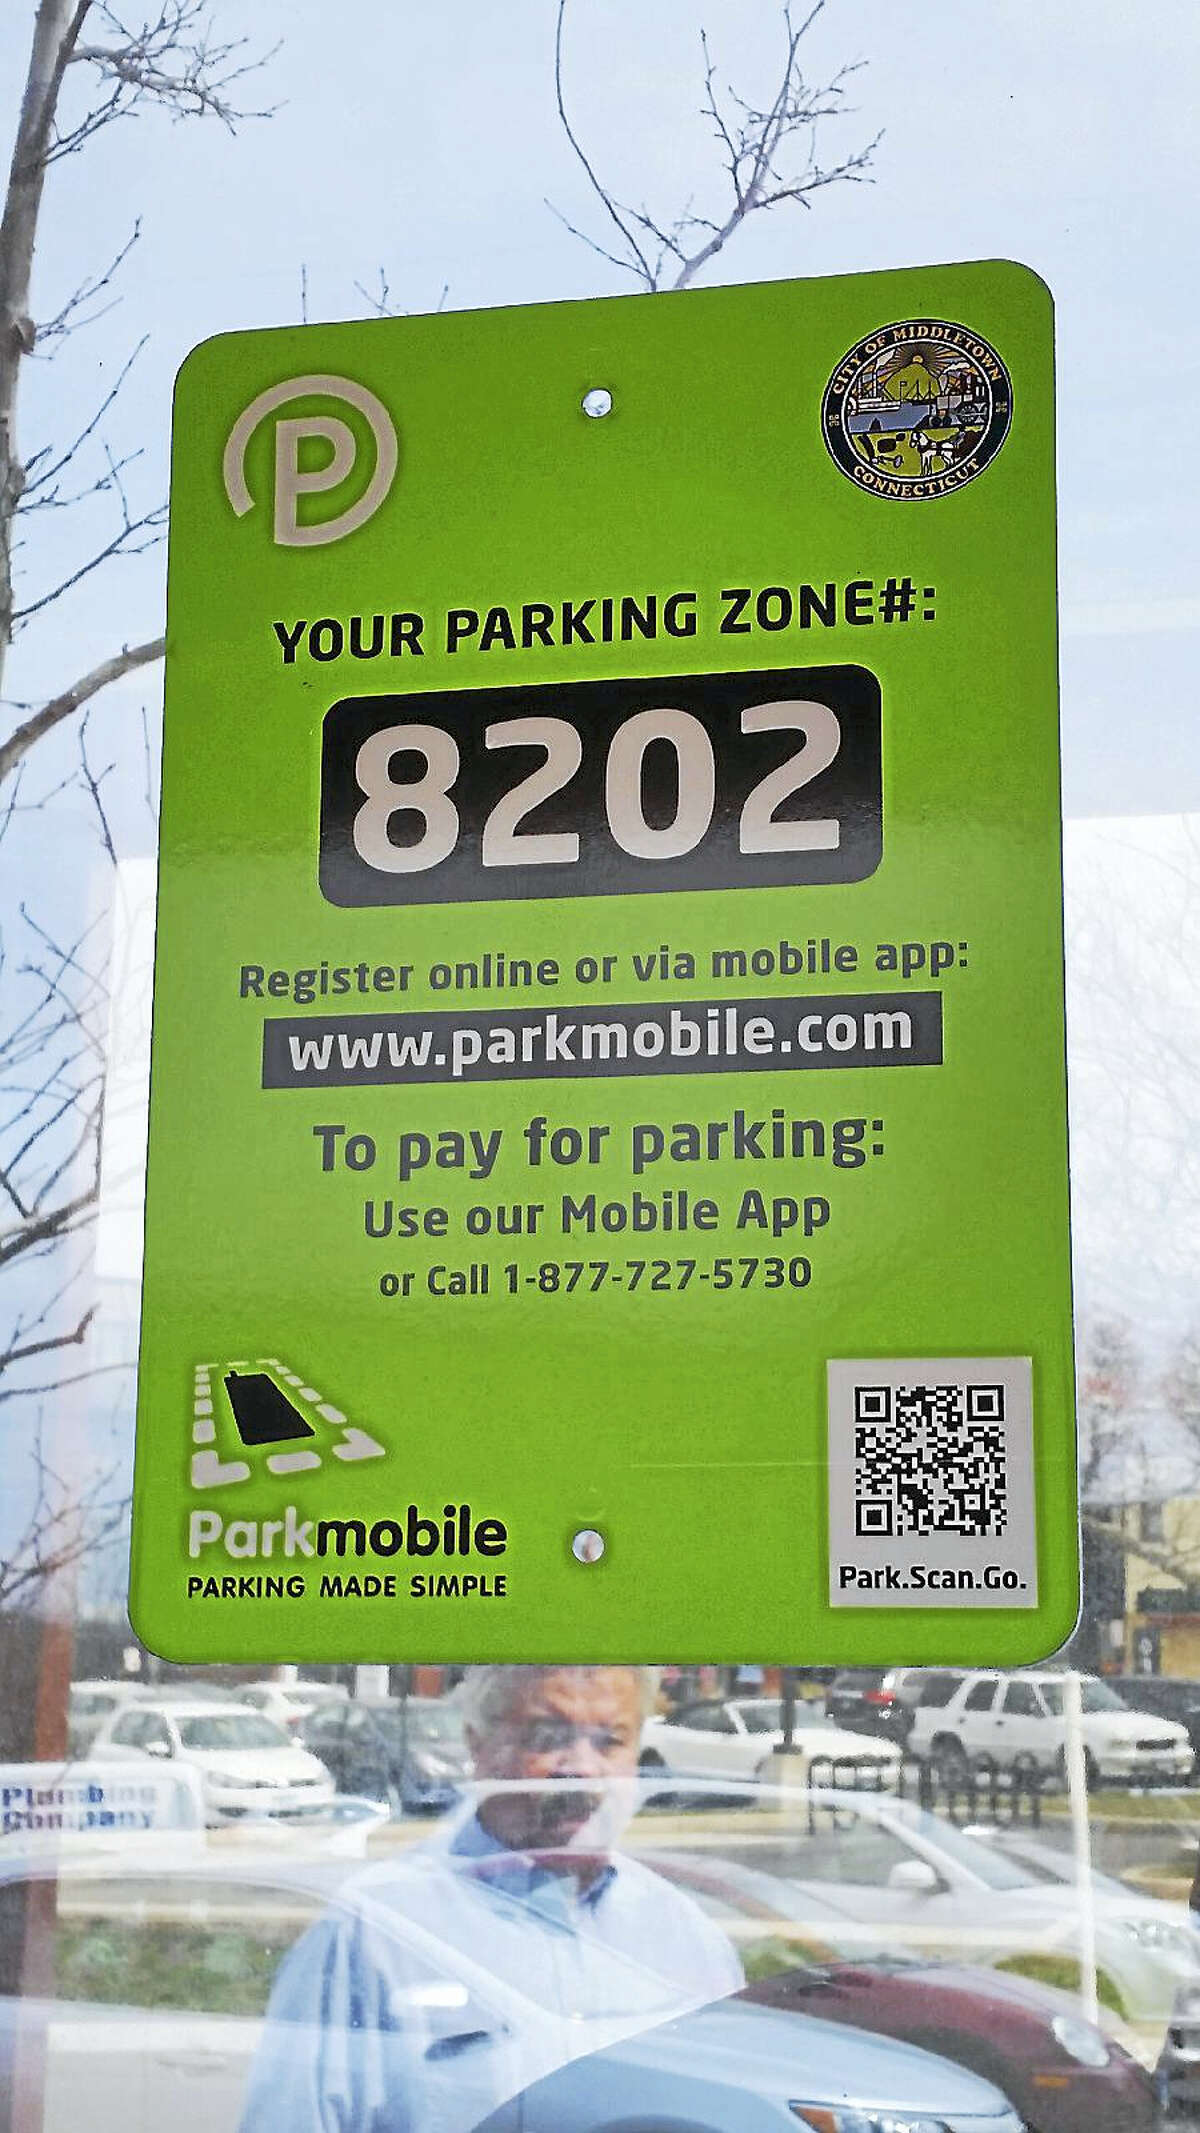 Paying to park in downtown Middletown, such as at the Melilli lot, can be made at the kiosk or from anywhere by tapping the Parkmobile app on a smartphone.